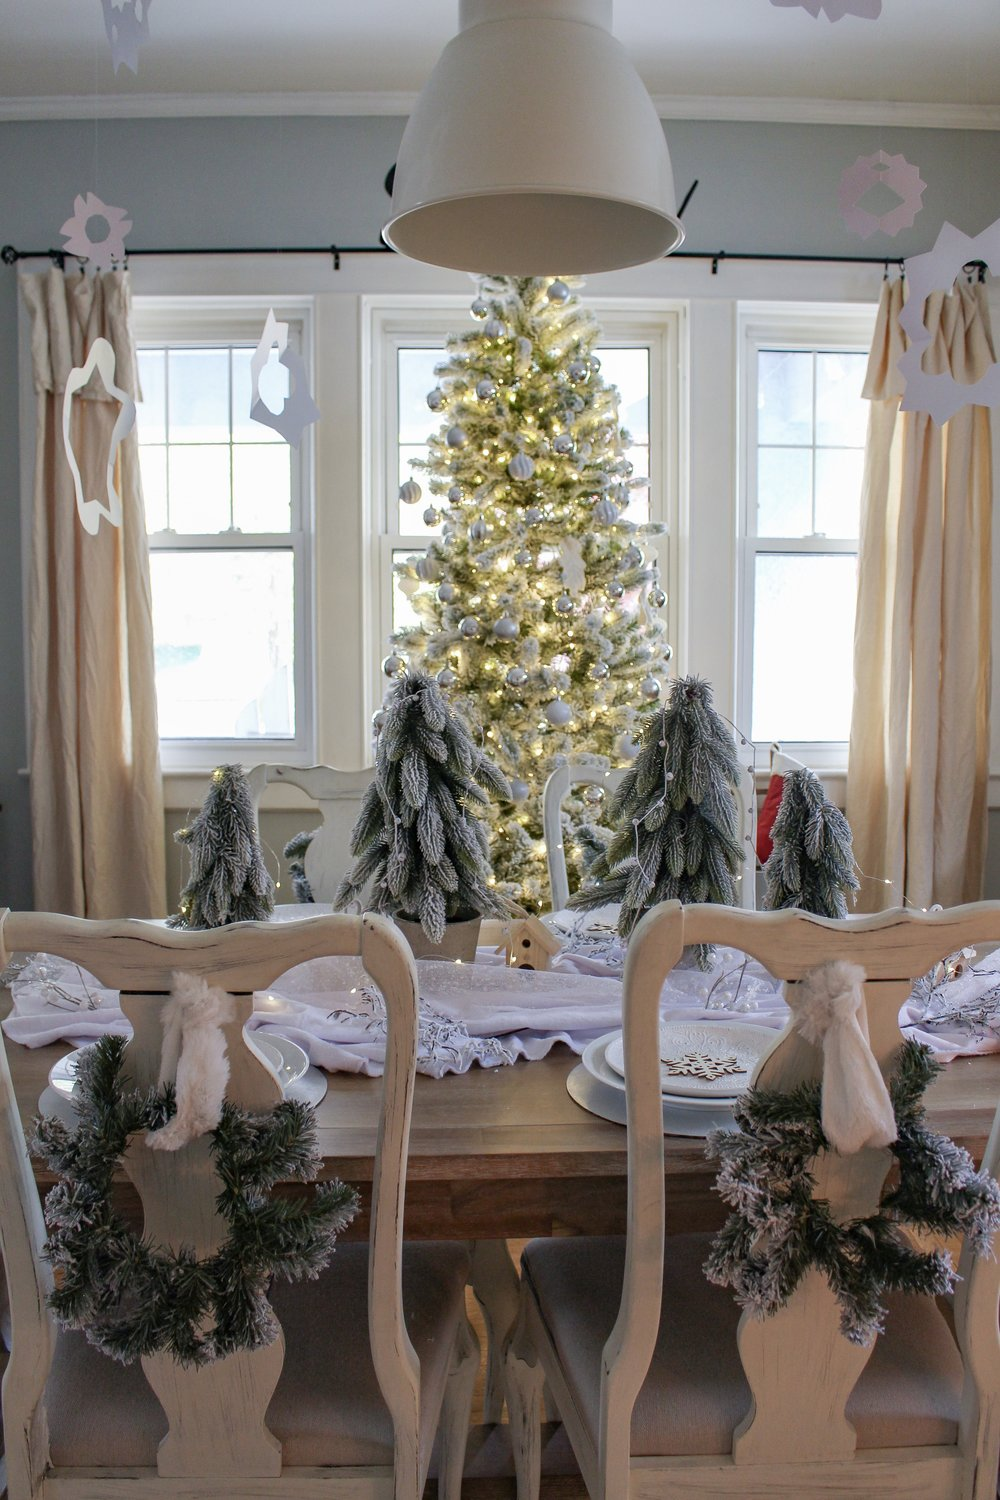 Christmas Wreaths on Dining Room Chairs